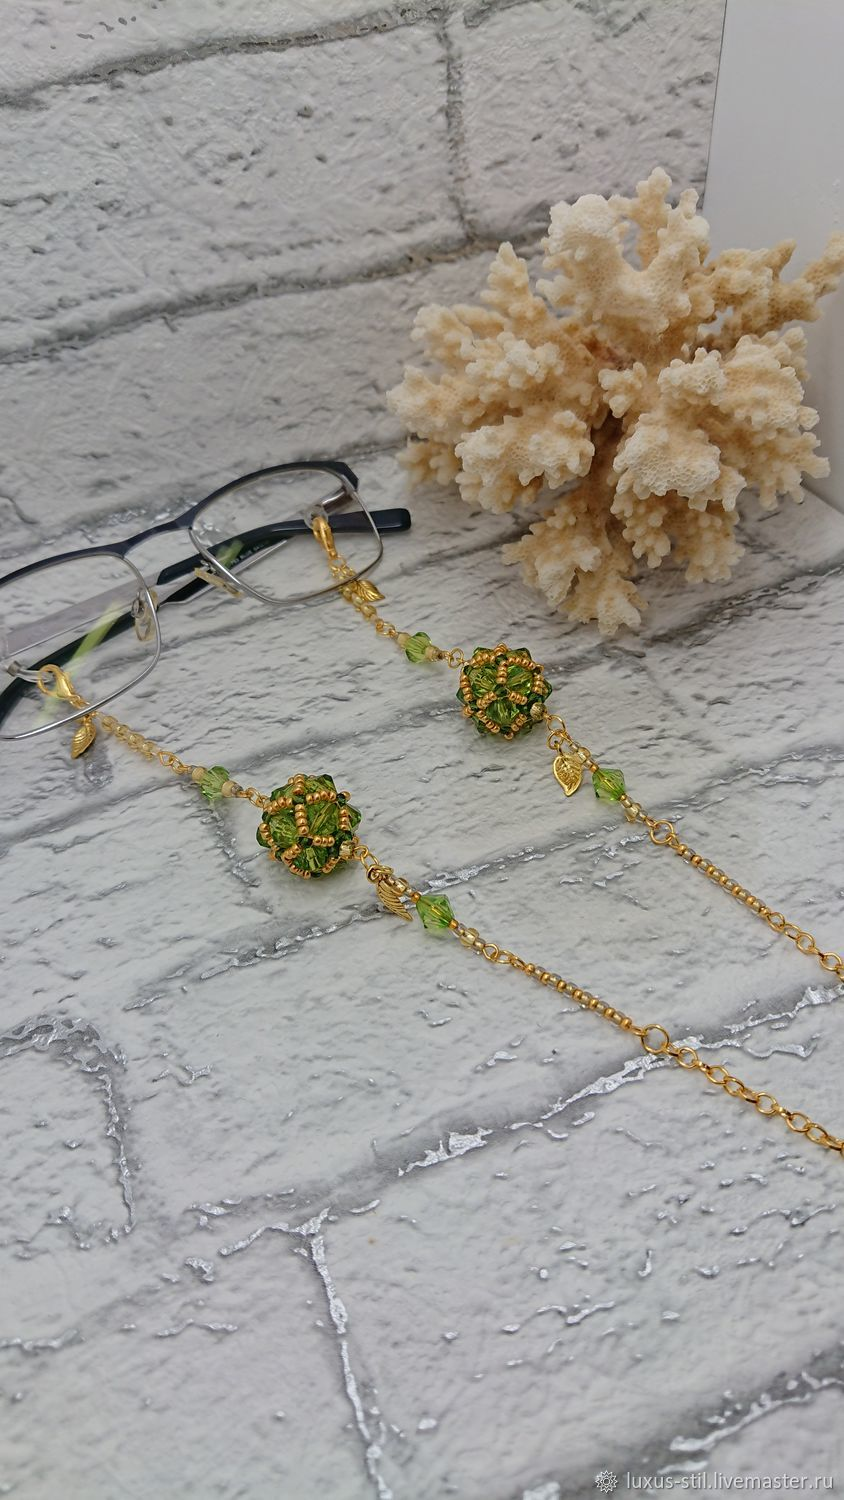 Chains for glasses: Juicy grass, Chain for glasses, Podolsk,  Фото №1